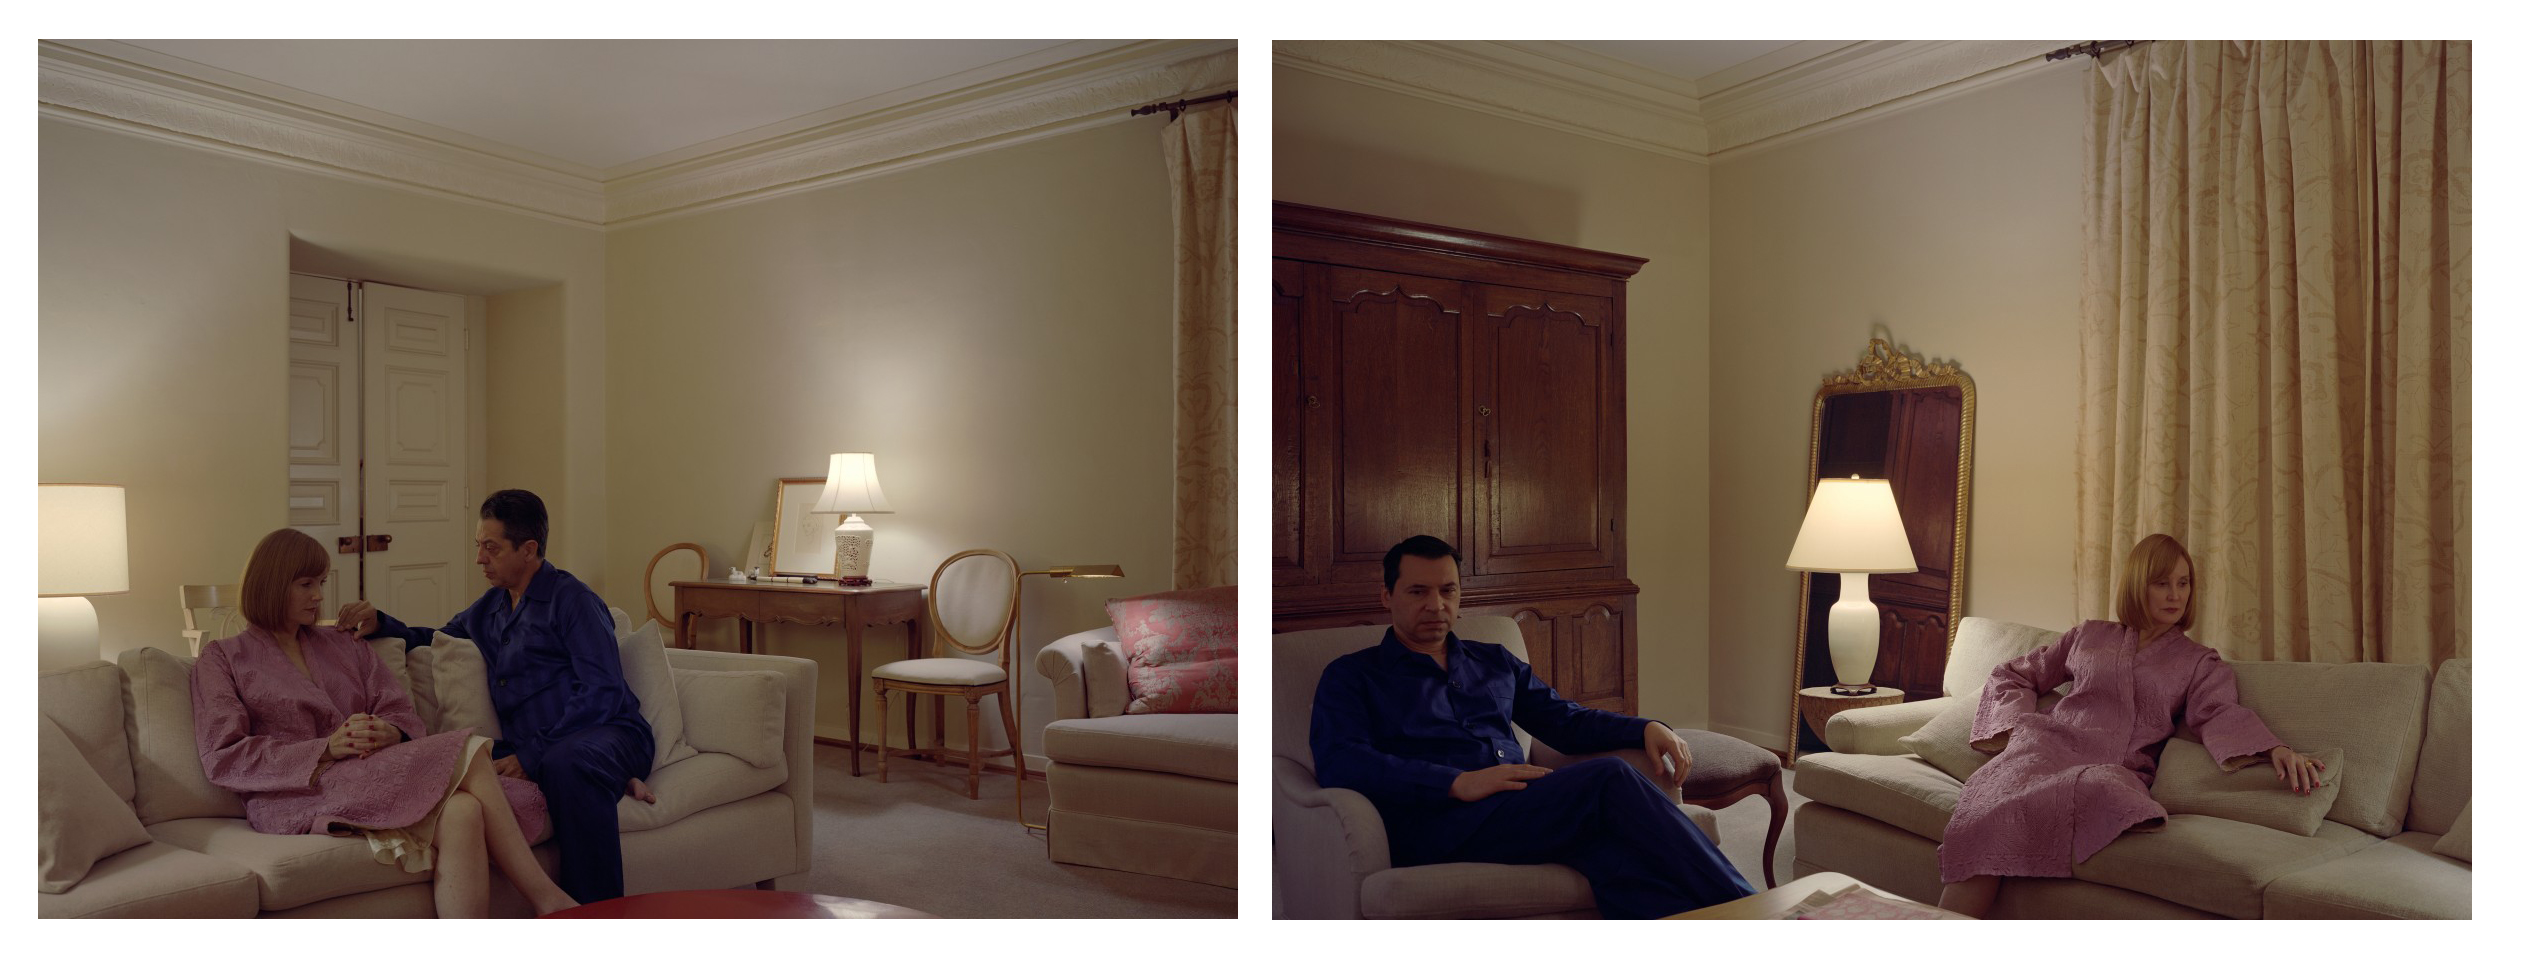 Pair of interiors, Jeff Wall, 2018